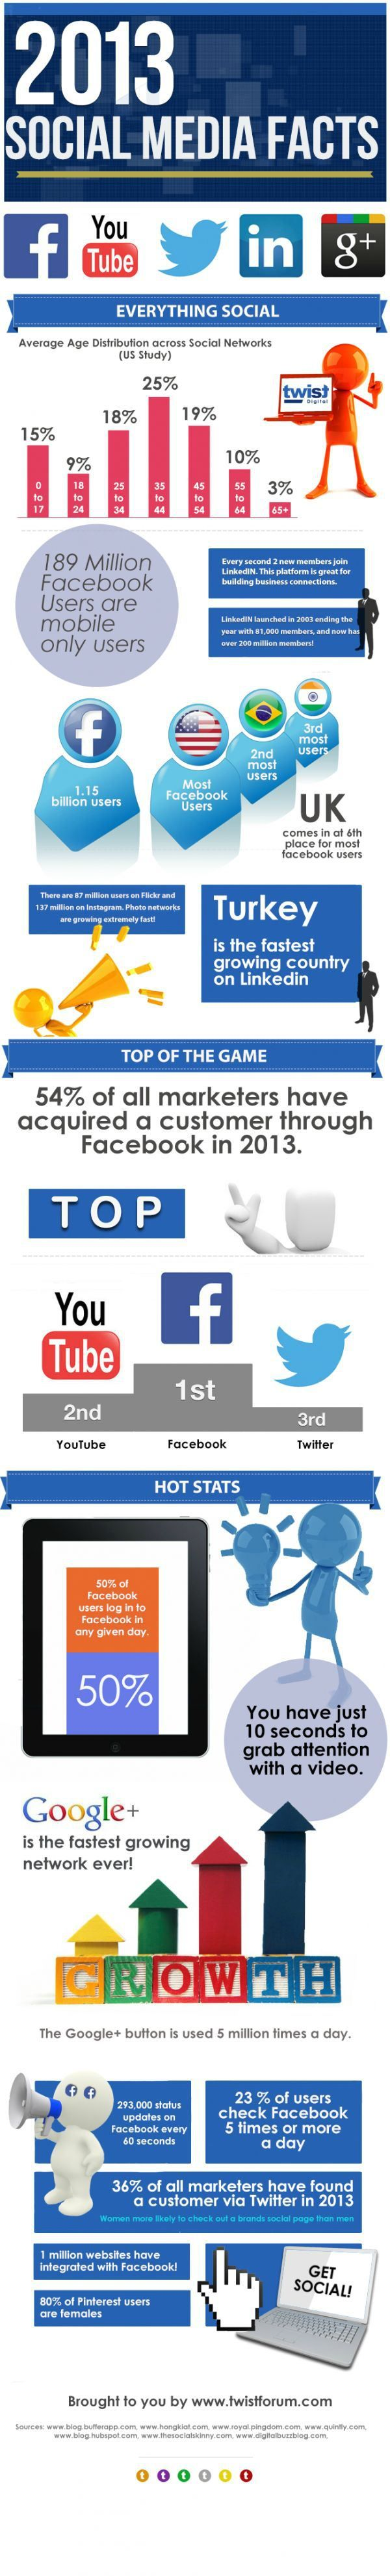 2013 Social Media Facts #infographic #socialmedia